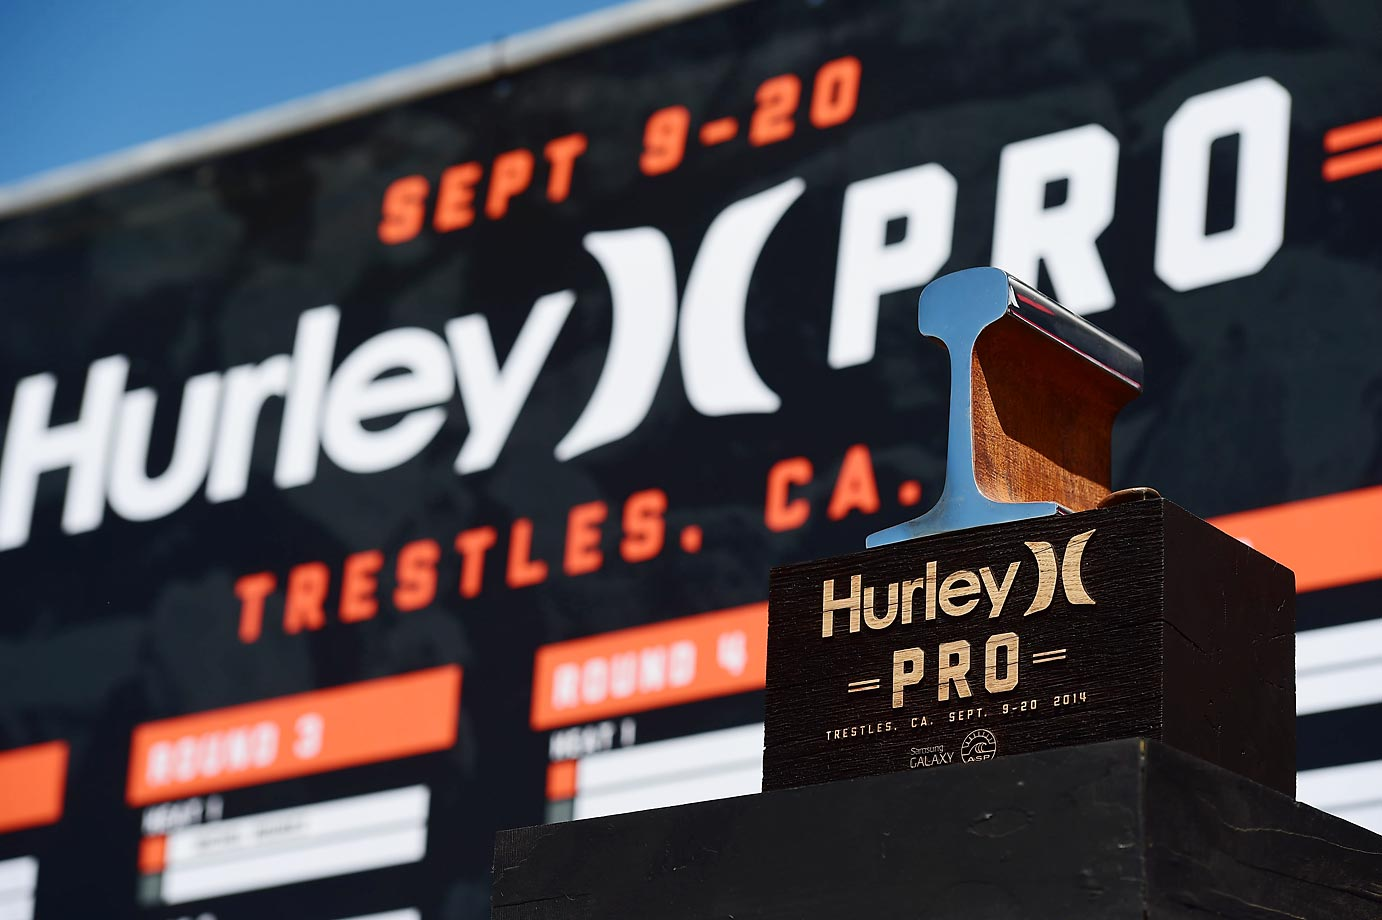 The Hurley Pro trophy is made in the shape of part of a railroad tie.